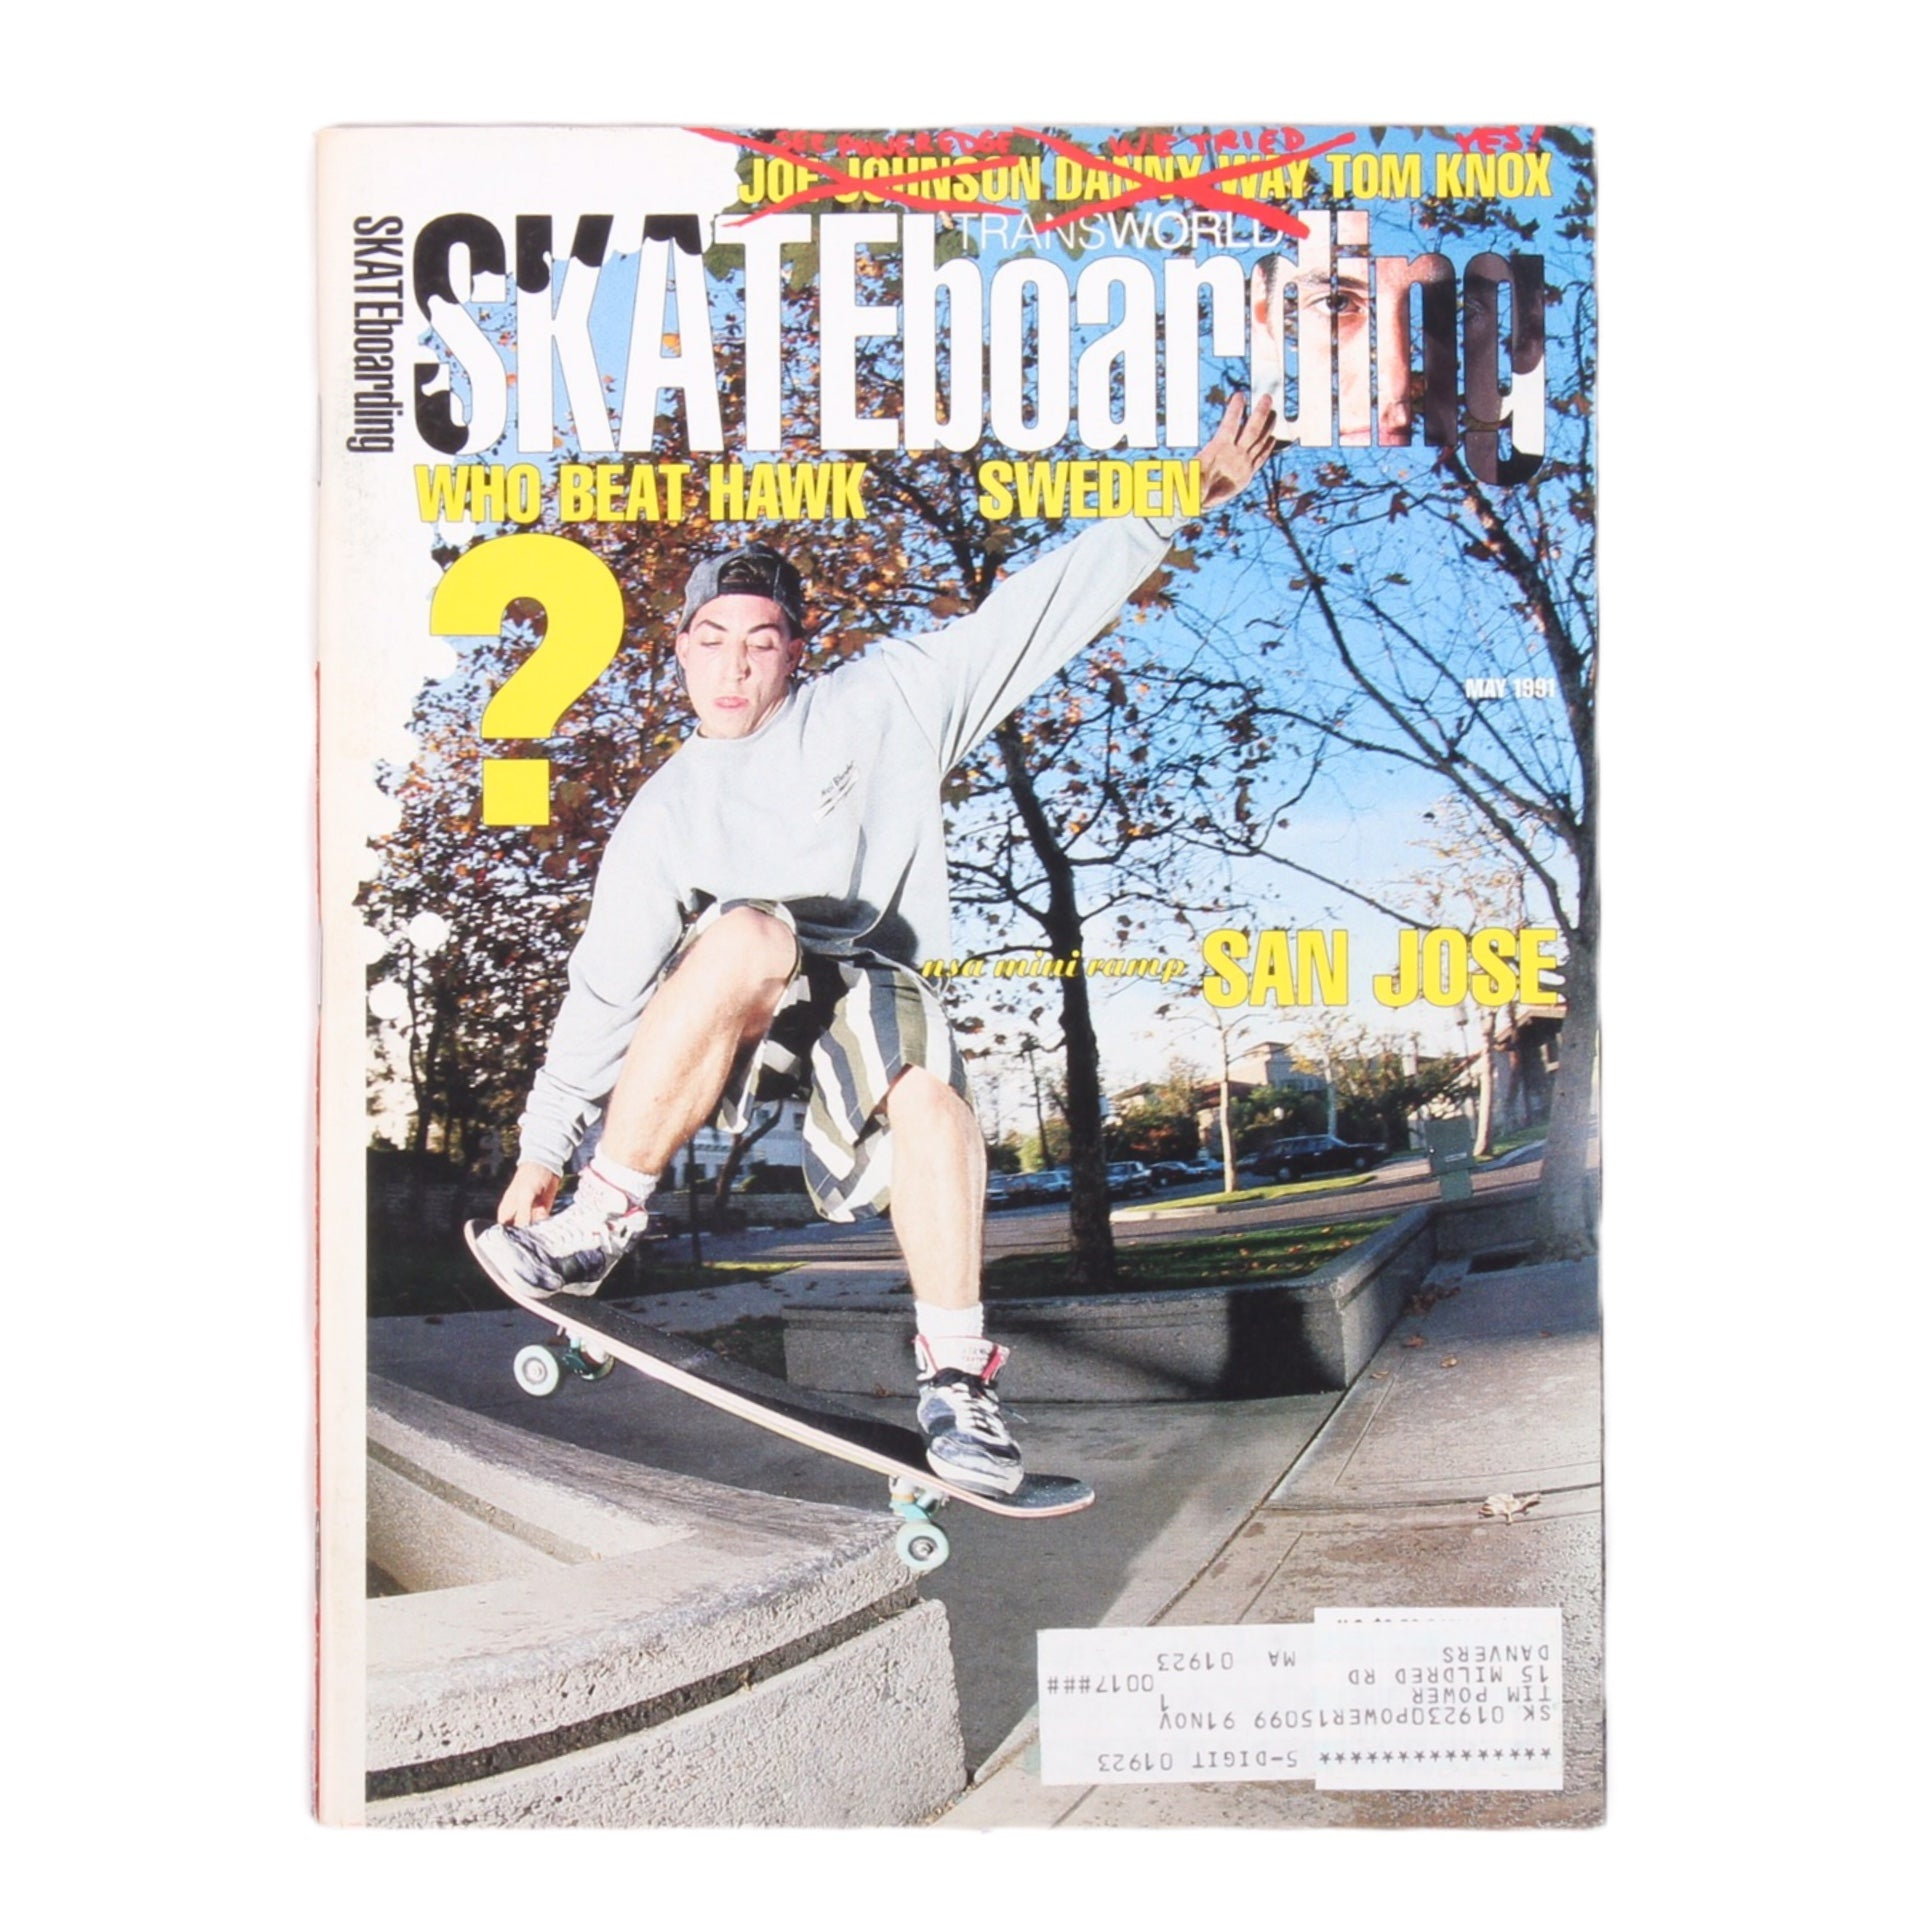 Overripe Transworld Skateboarding Magazine TWS May 1991